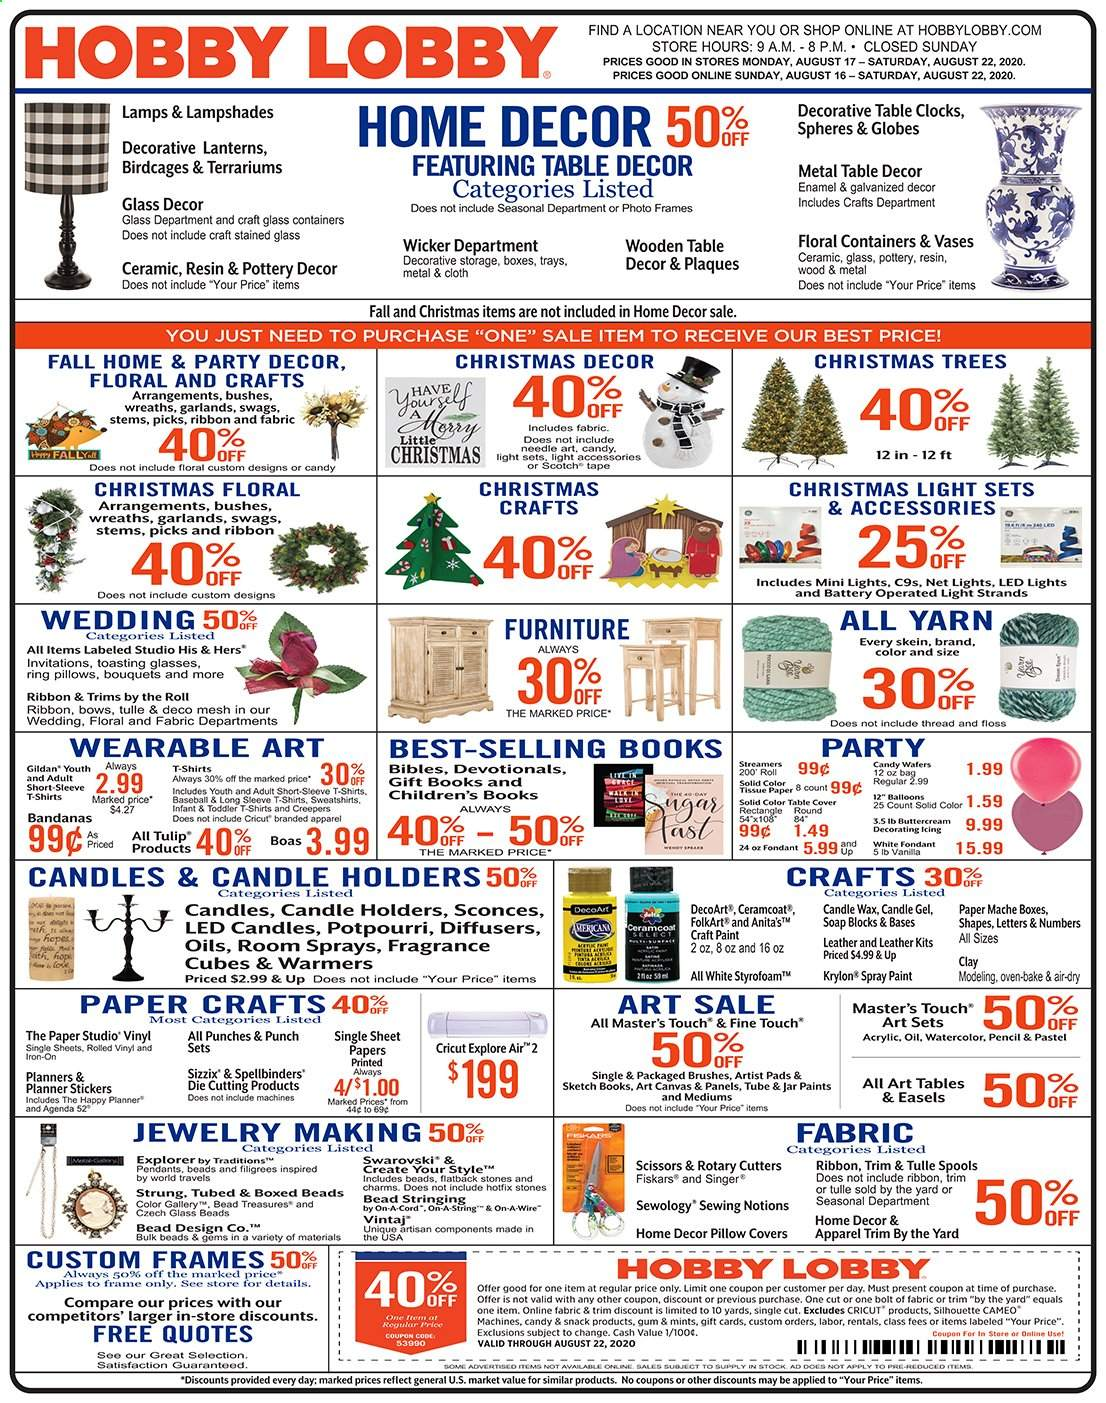 Hobby Lobby Flyer - 08.16.2020 - 08.22.2020 - Sales products - always, apparel, box, candle, diffuser, fiskars, fragrance, frame, furniture, lamp, led light, light set, sheet, shirt, solid, spray paint, sticker, sweatshirt, table, tape, wafers, christmas tree, christmas decor, jar, pillow, pillow cover, oven, pads, christmas lights, candy, snack, jewelry, gum, punch, scissors, vinyl, thread, sewing, oil, ribbon, stickers, glasses, paint, canvas, craft, led. Page 1.